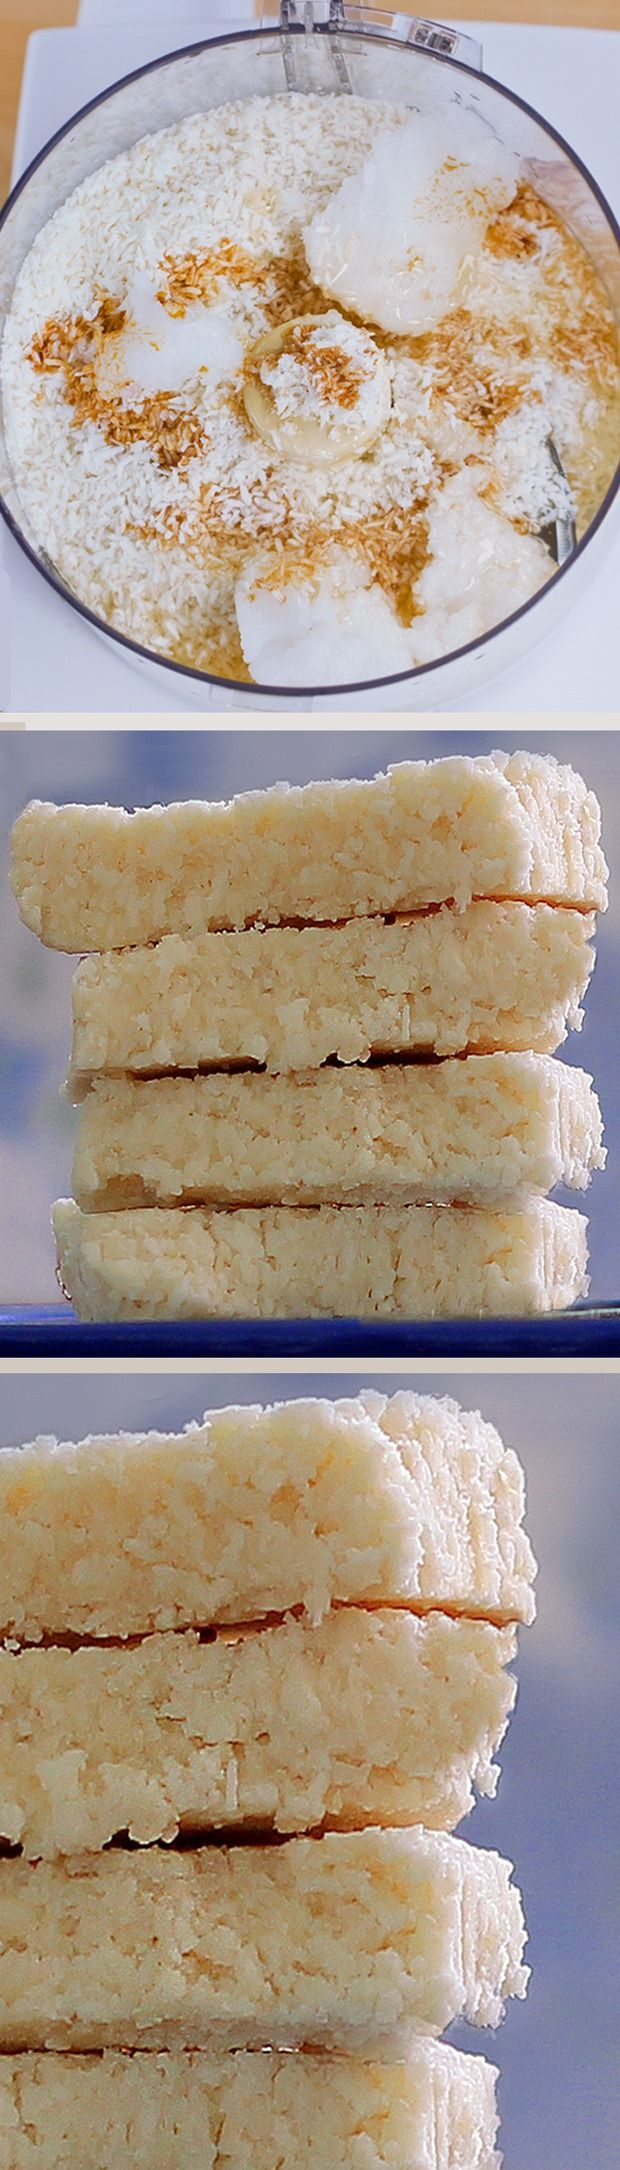 COCONUT CRACK BARS - 1 cup shredded coconut, 1/2 tsp vanilla extract, 1/8 tsp salt, 1/4 cup... Full recipe: http://chocolatecoveredkatie.stfi.re/2012/08/30/no-bake-coconut-crack-bars/ @choccoveredkt